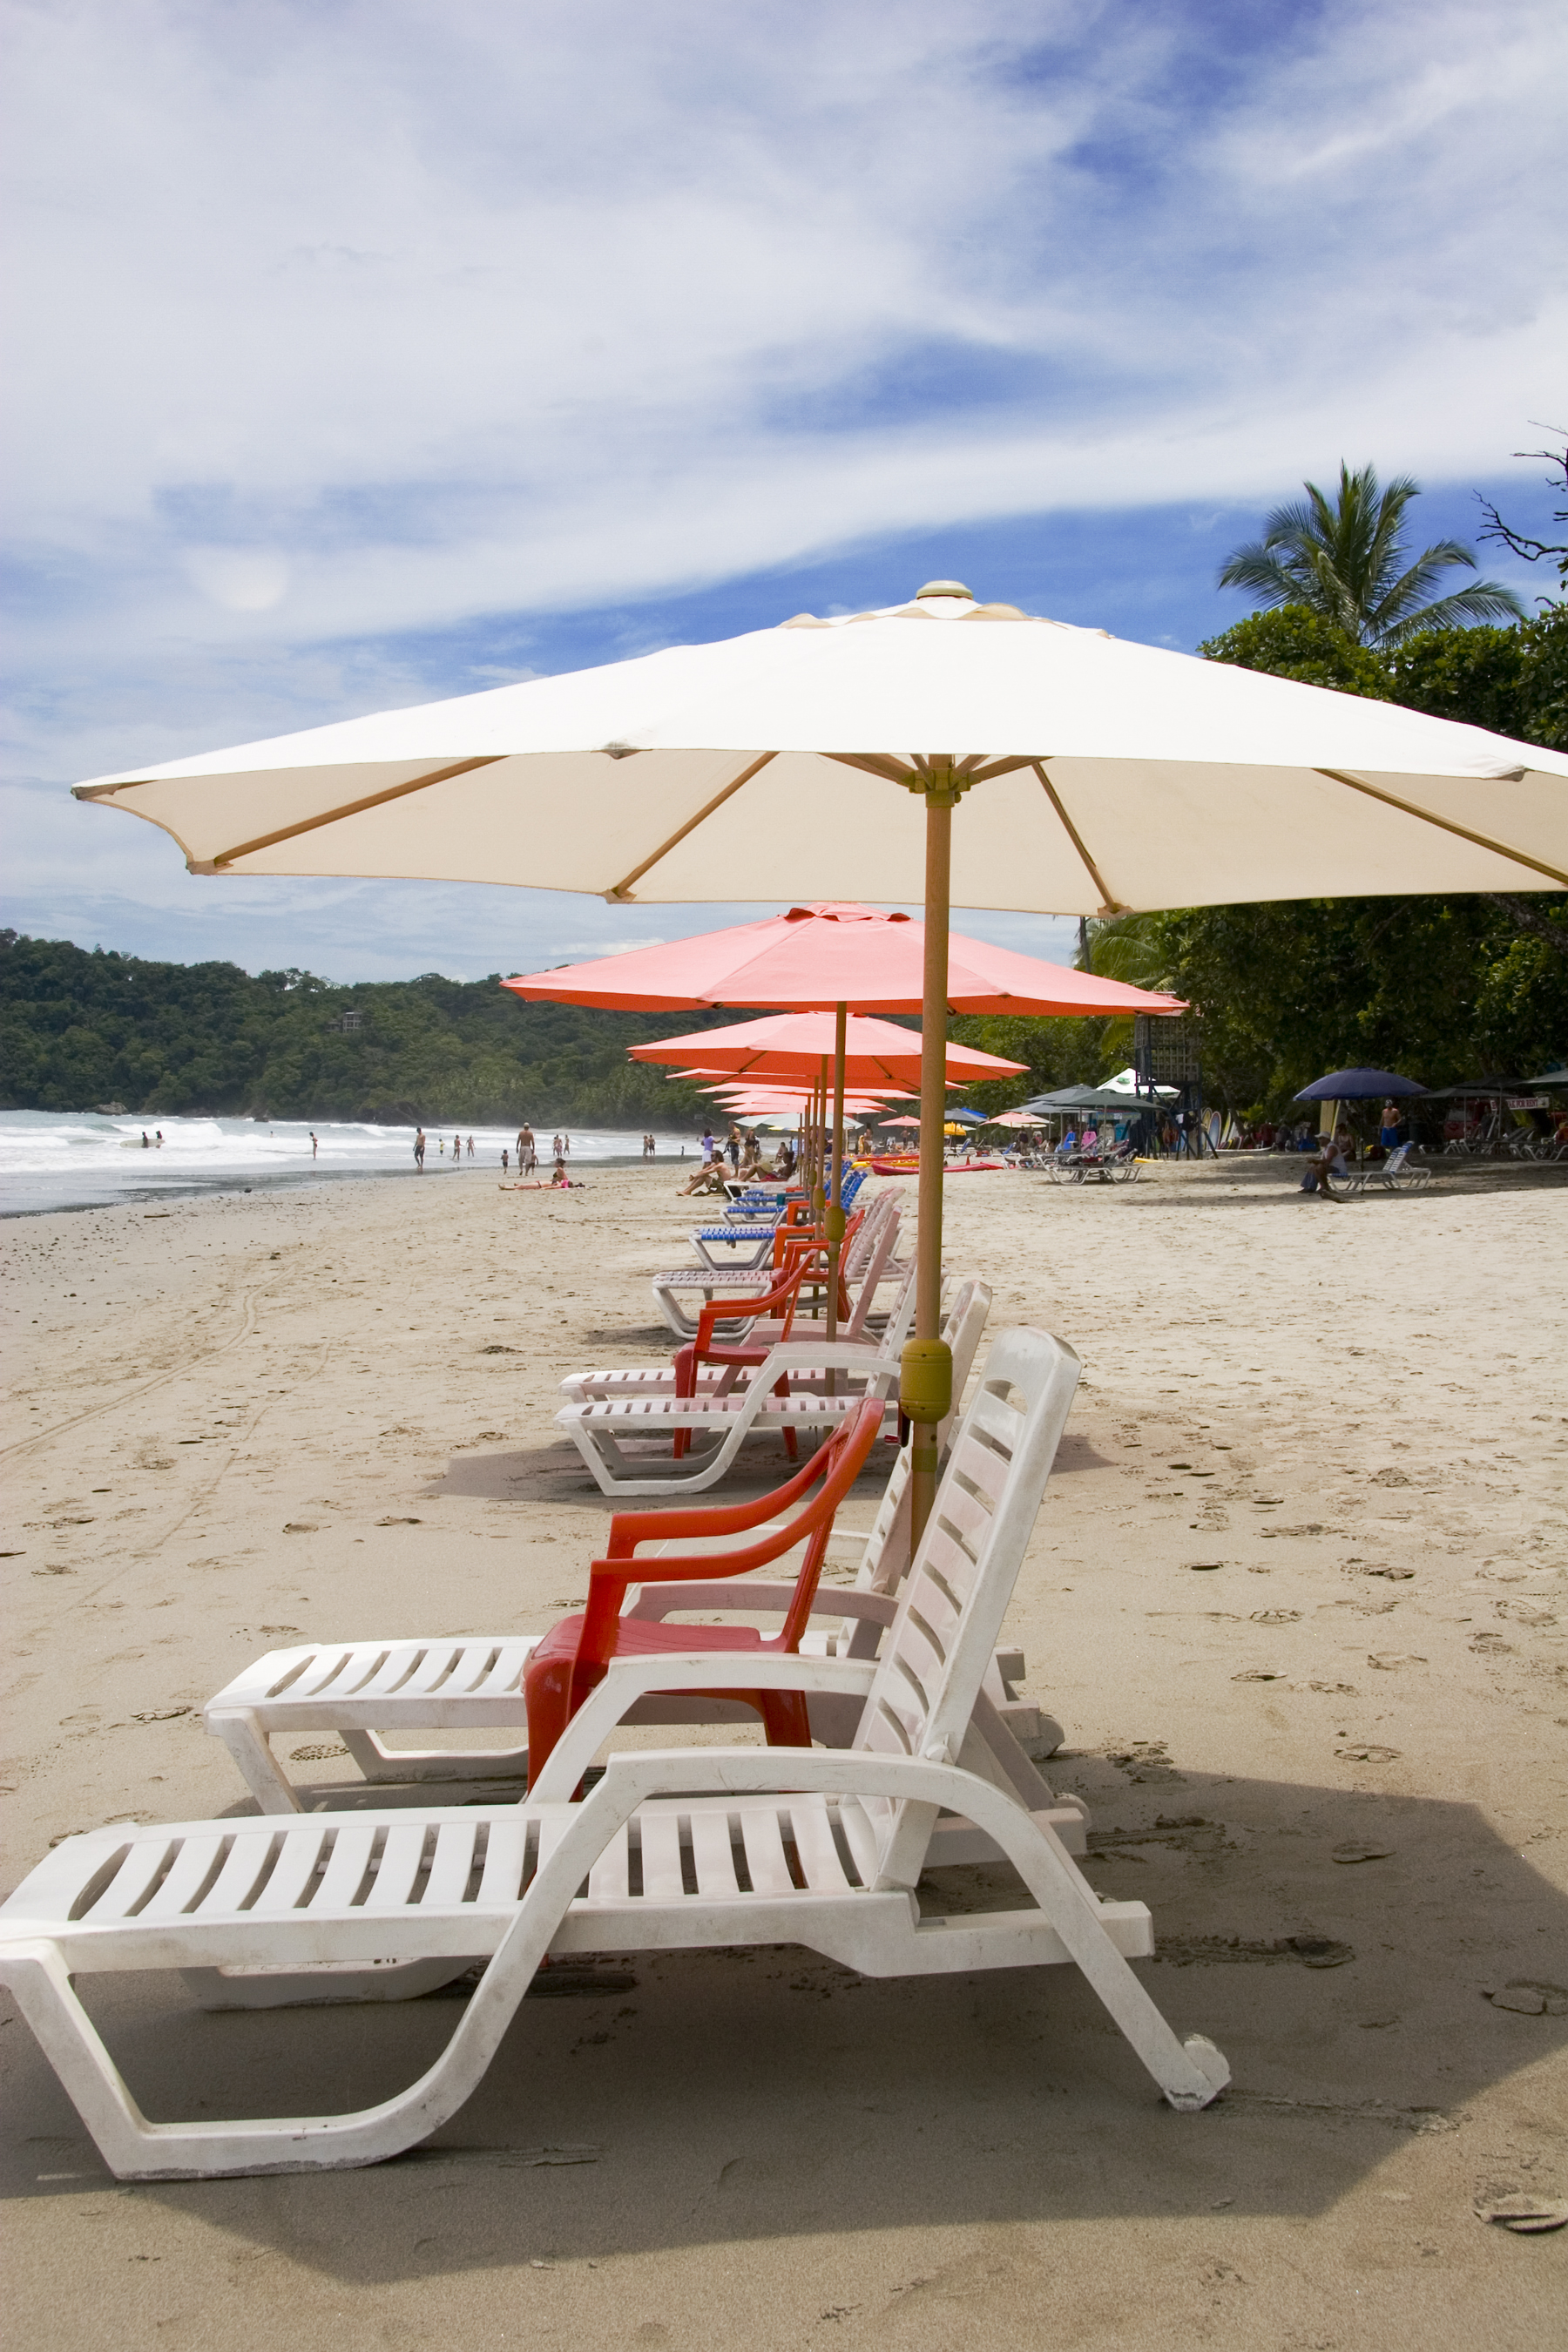 Chaises for rent, Parque Manuel Antonio